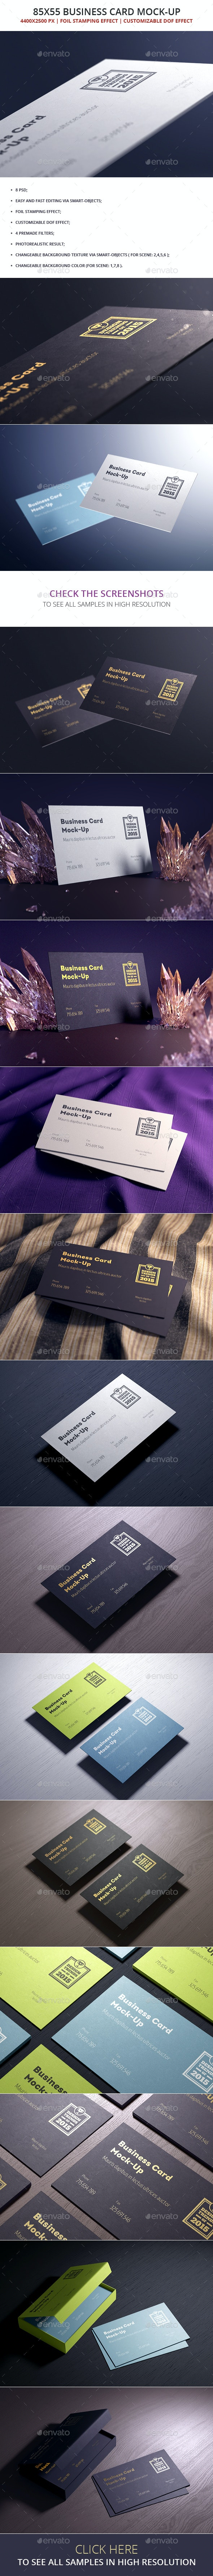 85x55 Business Card Mock-up - Business Cards Print